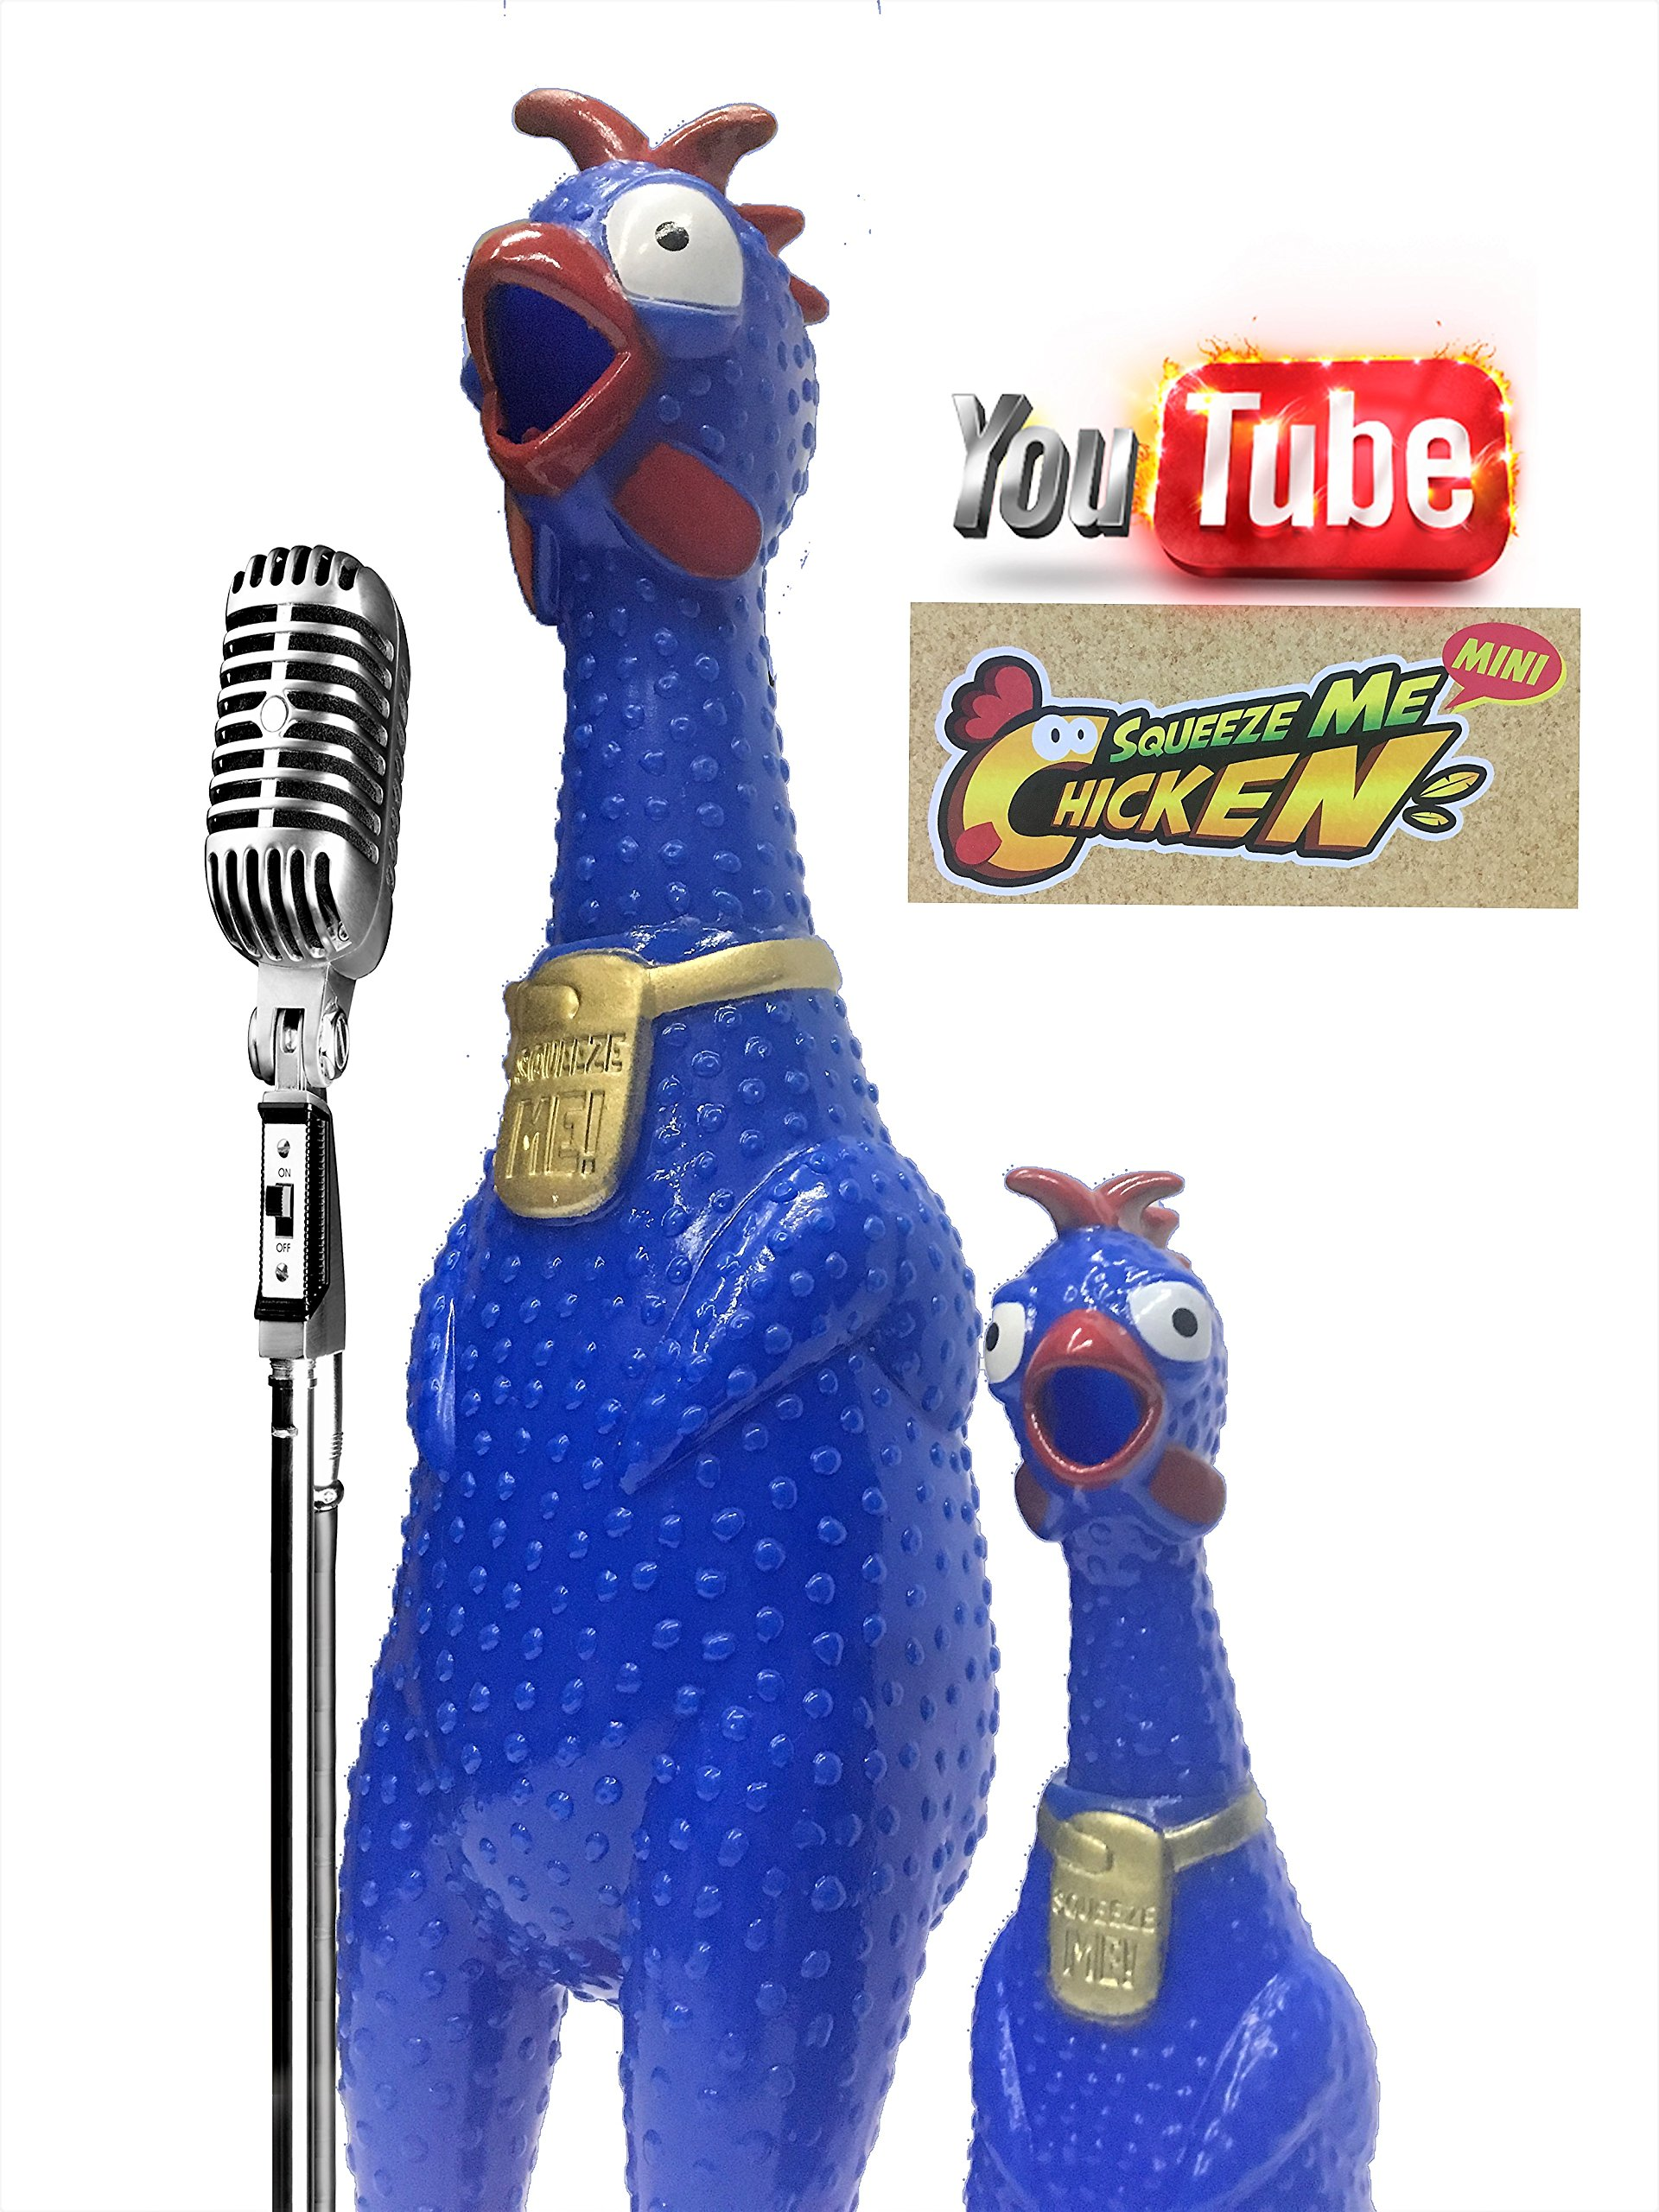 Animolds Value Bundle Screaming Mini Chicken from The Best Singing Chickens On YouTube (Mix24Pack) by Animolds (Image #8)